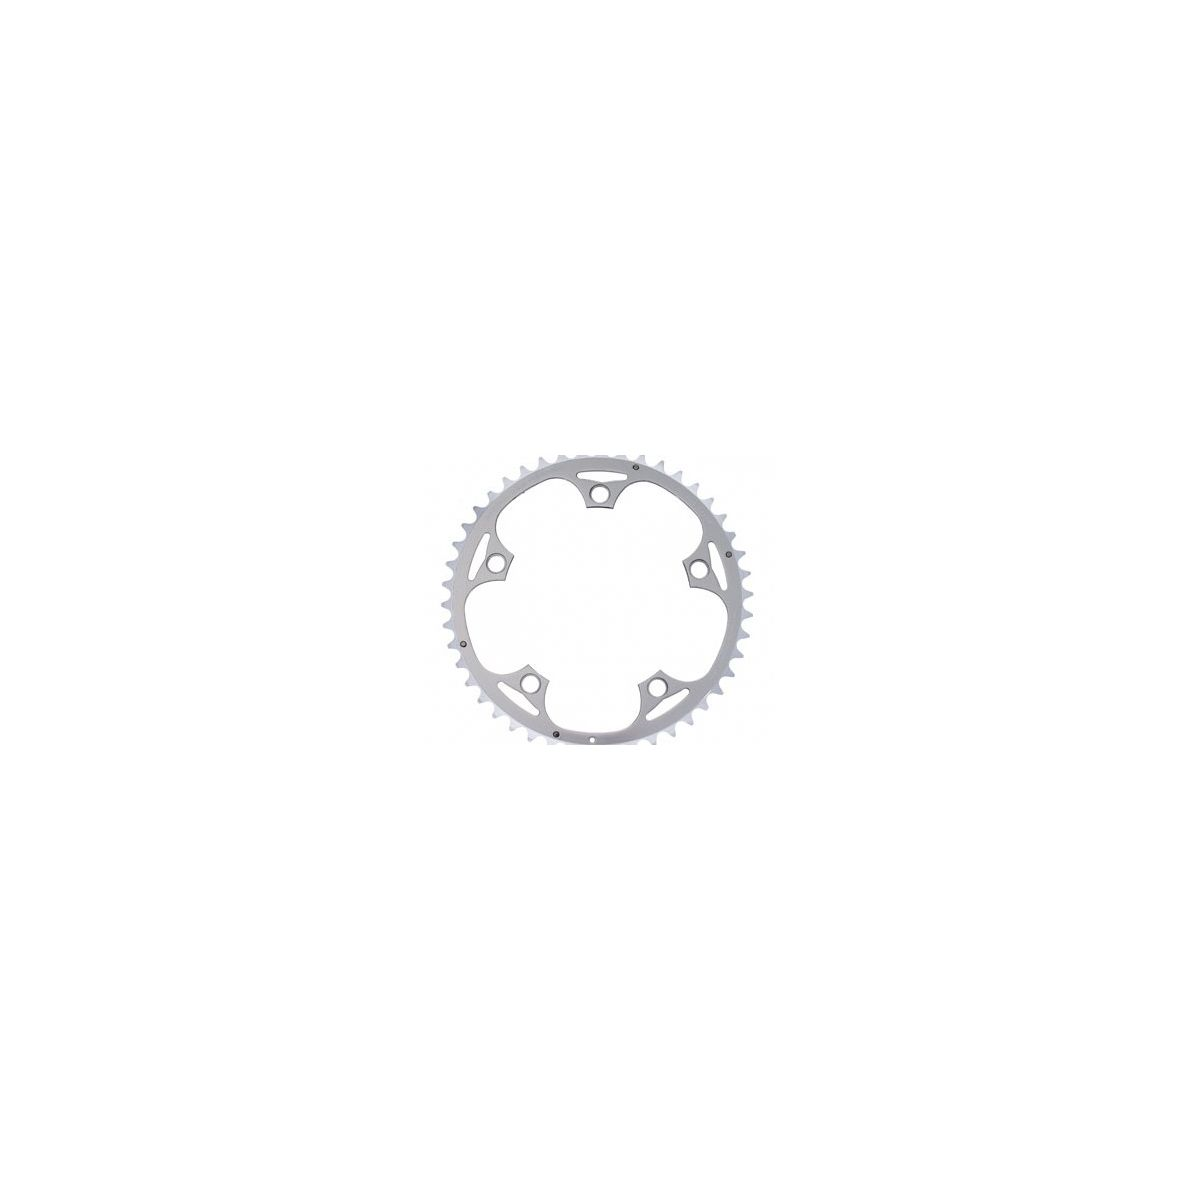 TA Alizé 9-/10-speed 46-tooth chainring | Klinger